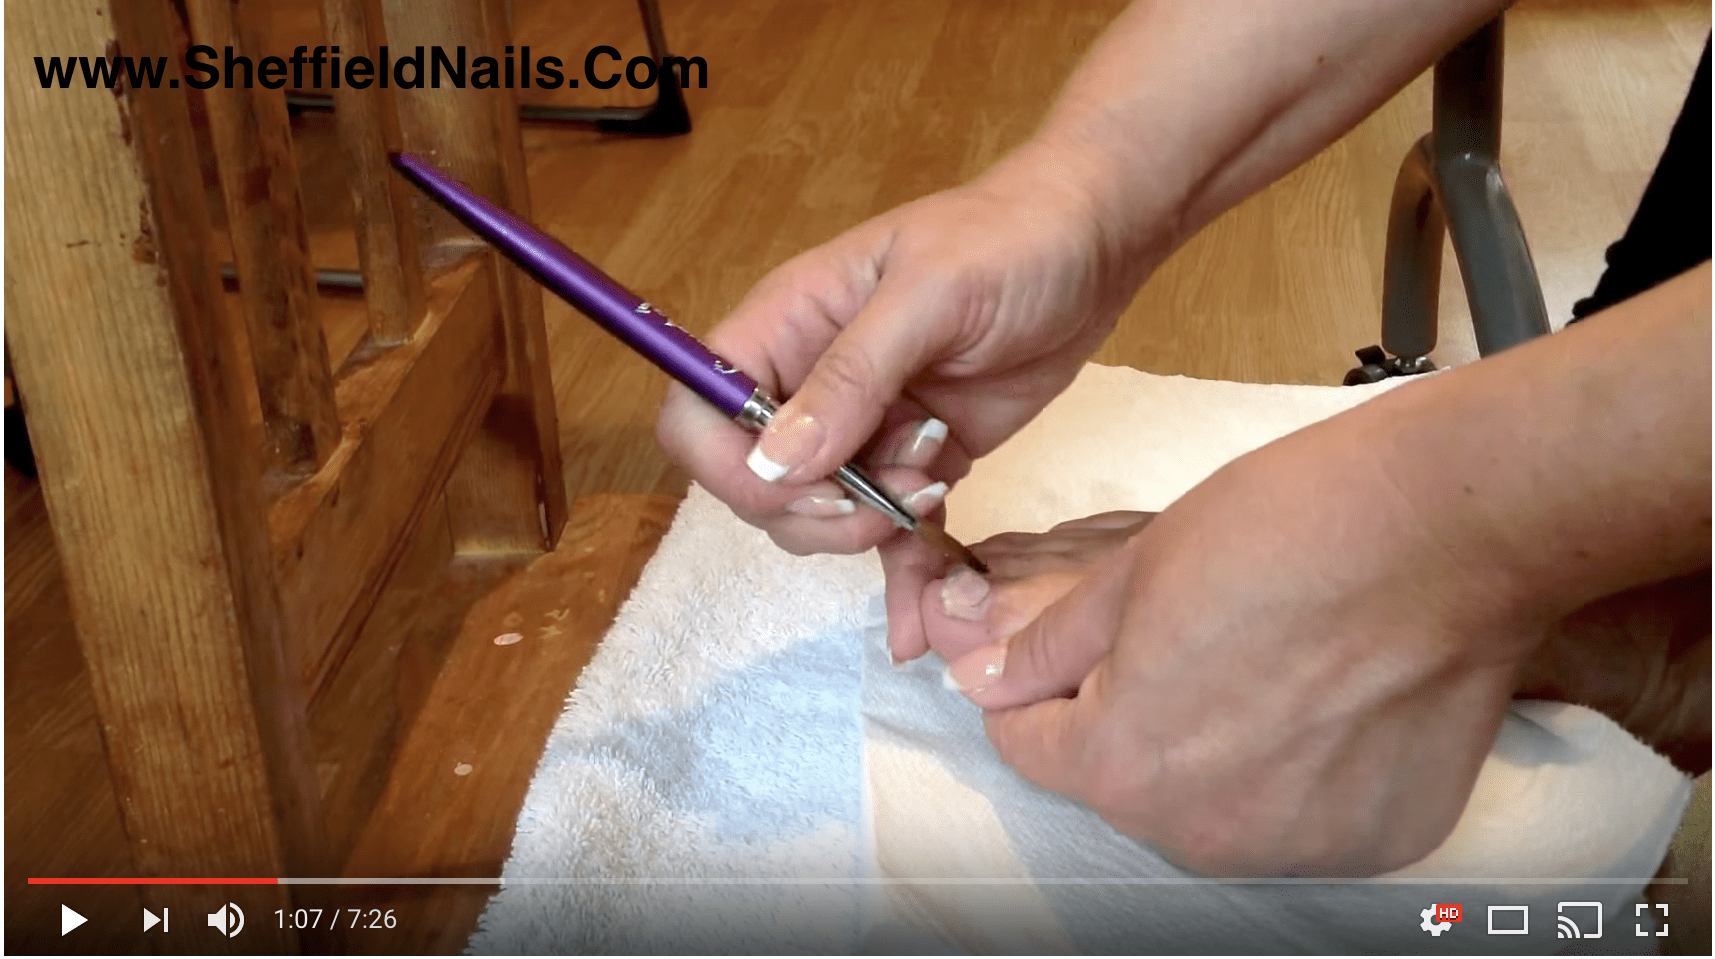 Applying acrylic adhesive on toenails